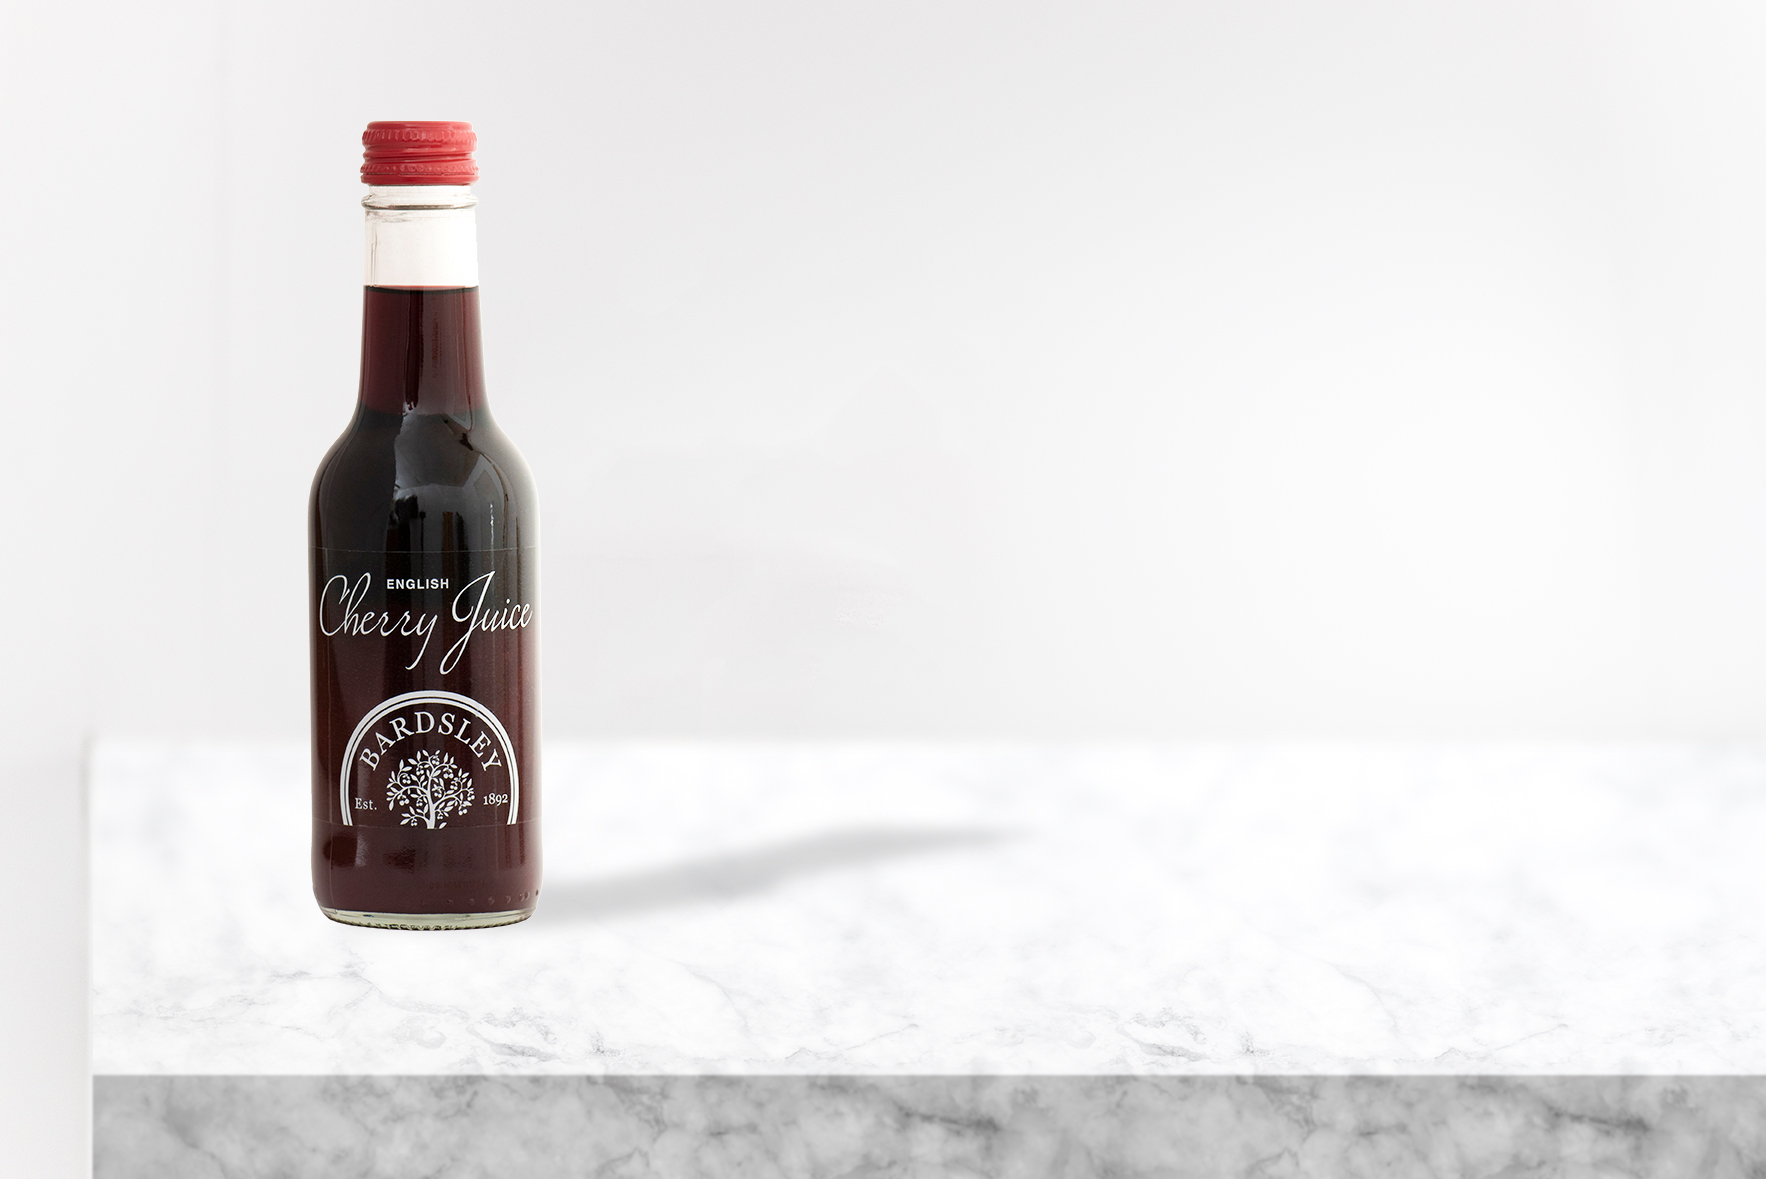 CHERRY JUICE - This 'Super Juice' is made from naturally sweet Kent cherries. Not only does it taste great but it is packed full of antioxidants and anti-inflammatory properties owing to the anthocyanin pigment naturally found in cherries. One glass a day can help to combat all sorts of common illness' and ailments.